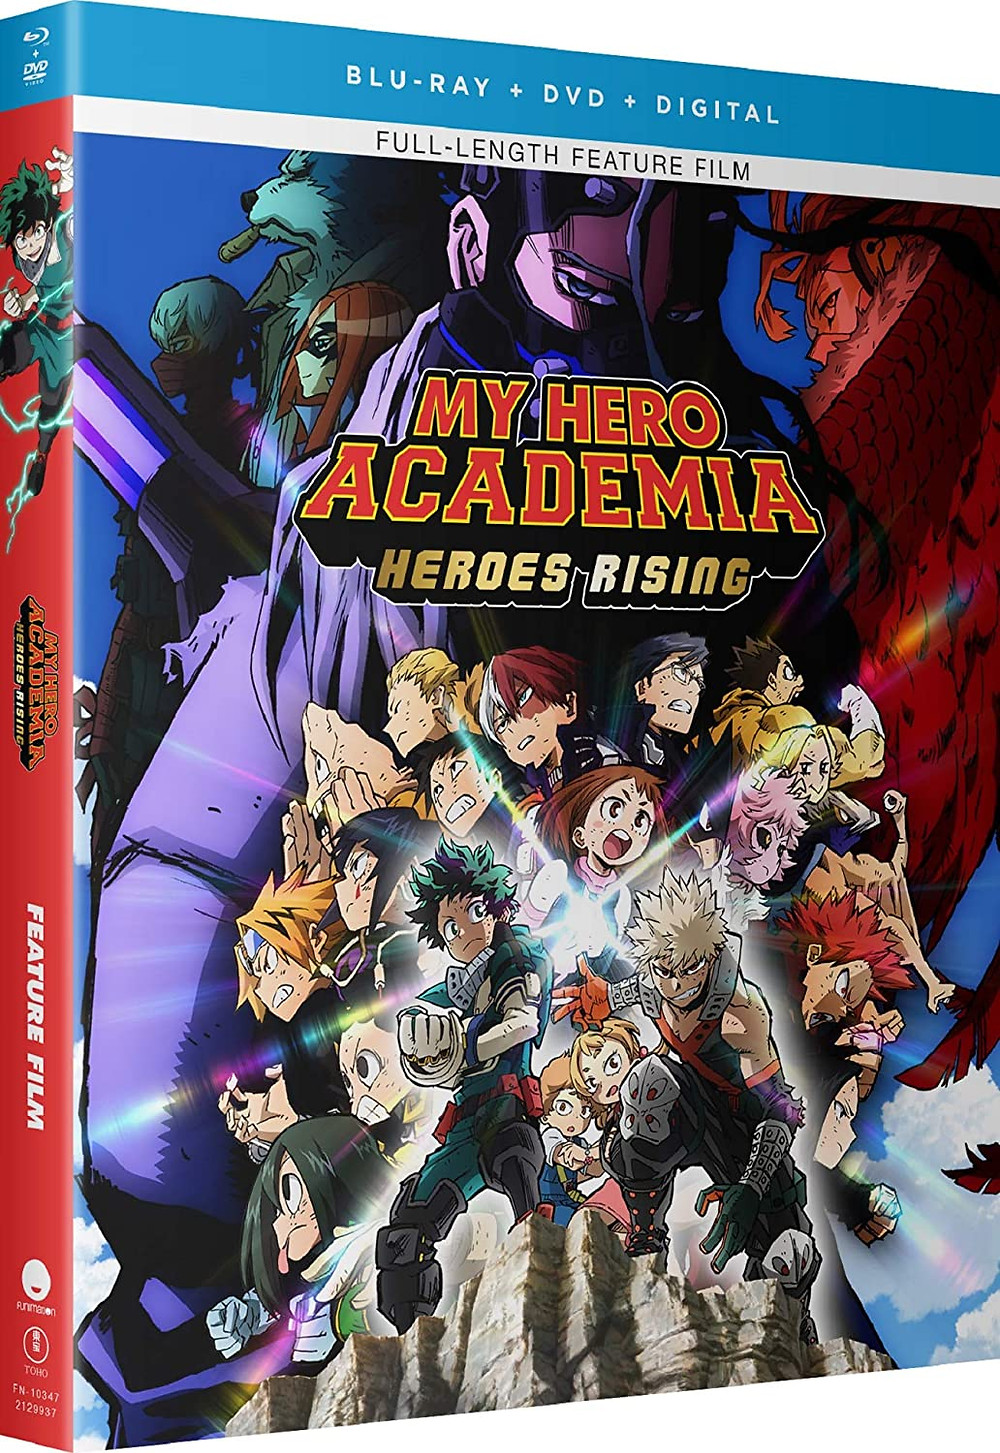 My Hero Academia: Heroes Rising and SAO: Alicization Blu-Ray, DVD Release on Monday, 26 October 2020